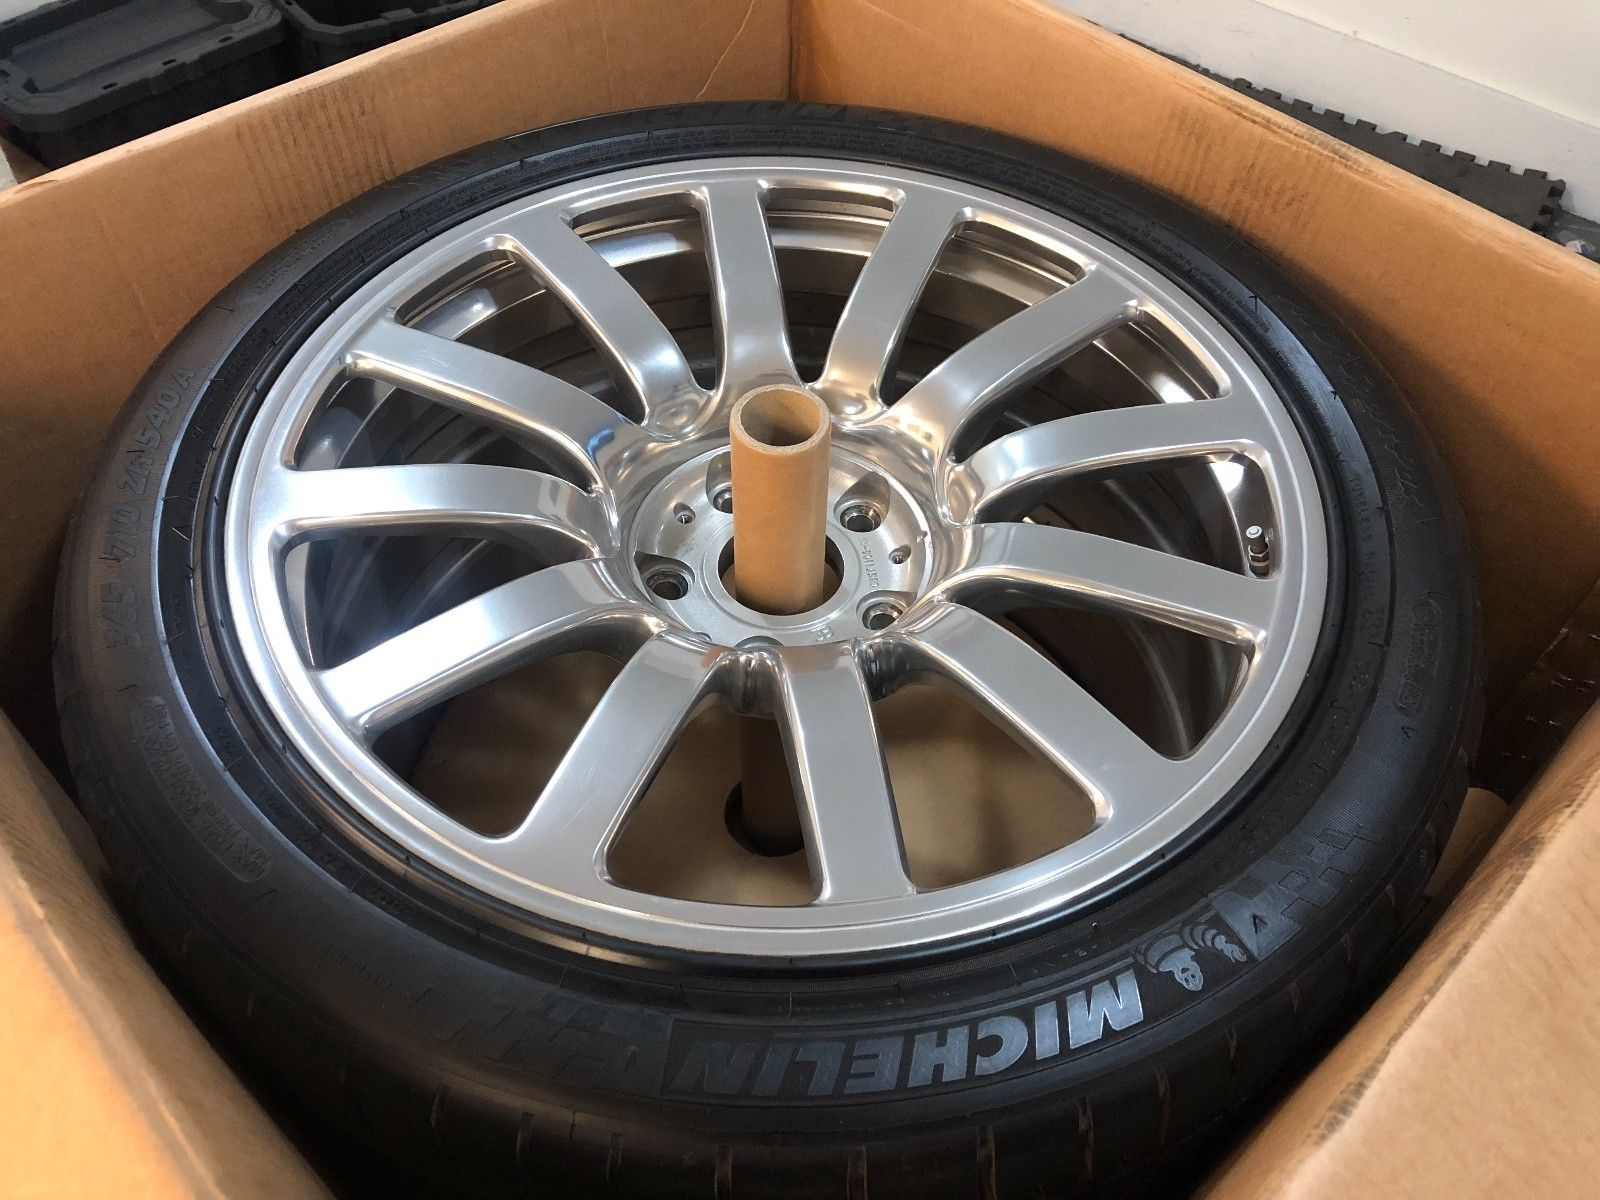 Bugatti Veyron Wheels and Tires for sale (3)